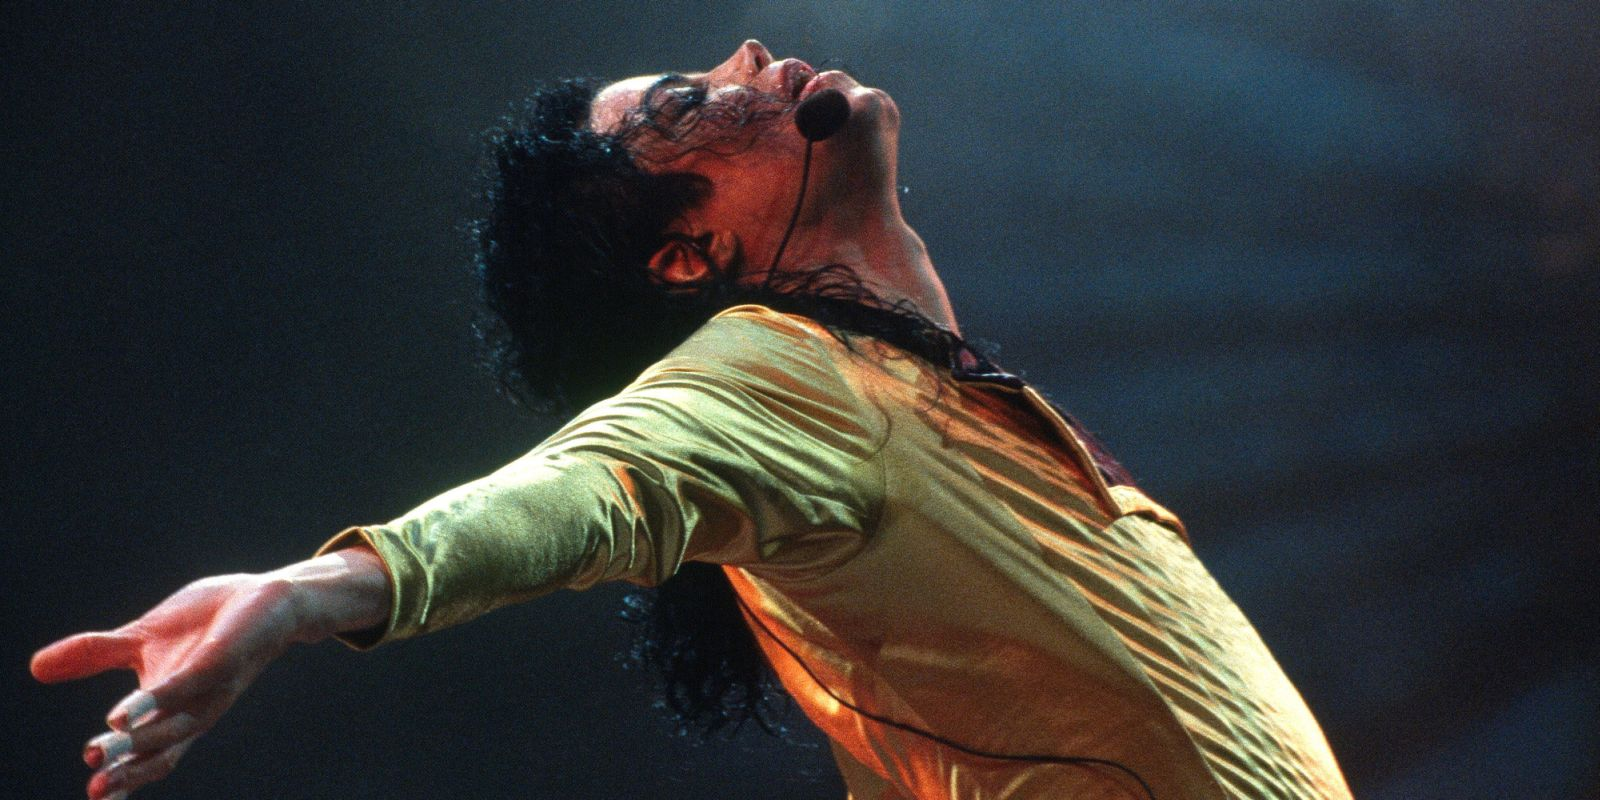 "Michael Jackson, durante il 'Dangerous World Tour', conseguente all'uscita dell'album 'Dangerous' del 1991. Il tour venne interrotto in seguito alle accuse di molestie a carico del cantante, rivelatesi poi infondate. Tutto il ricavato venne devoluto alla ""Heal the World Foundation"", fondata dallo stesso Michael Jackson nel 1992. Cult Stories Michael Jackson Dangerous king of pop music legend michael jackson songs michael jackson mp3 michael jackson thriller michael jackson smooth criminal michael jackson they don't care about us michael jackson dance michael jackson beat it michael jackson daughter michael jackson 2009 michael jackson smooth criminal mp3 michael jackson i'll be there michael jackson i want you back michael jackson a place with no name michael jackson i don care about us michael jackson i'm bad video michael jackson i remember the time michael jackson i michael jackson i the one michael jackson i lisa marie presley michael jackson i'm bad download i michael jackson a michael jackson song i michael jackson bad a michael jackson timeline i michael jackson still alive a michael jackson quote a michael jackson biography a michael jackson quiz i michael jackson really dead a michael jackson movie michael jackson وفاة michael jackson ويكيبيديا michael jackson michael jackson en youtube michael jackson en concert michael jackson en super bowl michael jackson en videos michael jackson en thriller michael jackson en mp3 michael jackson en south park michael jackson en neverland michael jackson en wii michael jackson en en michael jackson vitiligo en michael jackson slash en michael jackson illuminati en michael jackson transformation en michael jackson prince en michael jackson en wiki michael jackson usher en michael jackson en did michael jackson die youtube en michael jackson michael jackson مترجم michael jackson مترجم عربي michael jackson مدبلج michael jackson me and music hold me michael jackson music me michael jackson michael jackson give into me michael jackson al capone michael jackson al capone lyrics michael jackson ll be there michael jackson le cirque du soleil al capone michael jackson al capone michael jackson lyrics michael jackson 9/11 9 11 michael jackson michael jackson videos michael jackson billie jean michael jackson net worth michael jackson bad michael jackson youtube michael jackson cirque du soleil michael jackson a michael jackson a paris michael jackson a neverland michael jackson a stranger in moscow michael jackson a billie jean michael jackson a lisa marie presley michael jackson a ghost michael jackson a tribute michael jackson a want you back a michael jackson memorial a michael jackson a bad michael jackson a young michael jackson michael jackson طرب michael jackson طرب توب michael jackson t shirts michael jackson t shirt michael jackson t michael jackson t shirts amazon michael jackson 6 years old michael jackson t shirt beat it michael jackson t shirts at target michael jackson t shirt h&m michael jackson se volvio blanco porque michael jackson se hizo blanco porque michael jackson she's out of my life michael jackson سمعنا michael jackson as a kid michael jackson as a child michael jackson as a baby michael-jackson's-this-is-it michael jackson as a father michael jackson as a boy michael jackson as dave dave michael jackson c mon michael jackson as a vampire as michael jackson d s michael jackson ben as michael jackson navi as michael jackson c'mon michael jackson black as michael jackson eminem as michael jackson d.s. michael jackson mp3 download dance as michael jackson michael jackson زندگینامه michael jackson oz michael jackson oz movie michael jackson's ghosts michael jackson's song michael jackson s est il converti à l islam michael jackson s est converti à l islam michael jackson oz scarecrow michael jackson's ghost oz michael jackson movie jay z michael jackson jay z michael jackson summer jam wizard oz michael jackson d.s. michael jackson wiki a-z michael jackson lyrics d.s. michael jackson free mp3 download michael jackson the way you make me feel michael jackson the way you make me feel lyrics michael jackson the experience michael jackson the immortal world tour michael jackson the immortal world tour by cirque du soleil michael jackson the ultimate collection michael jackson the experience wii michael jackson the way you make me feel mp3 michael jackson the simpsons michael jackson the experience ps3 michael jackson de videos michael jackson de thriller michael jackson de juegos michael jackson de biografia michael jackson de musica michael jackson de canciones michael jackson de jeux michael jackson de la muerte michael jackson de peliculas michael jackson de musicas michael jackson j the michael jackson company llc the michael jackson experience the michael jackson story the michael jackson experience wii the michael jackson movie the michael jackson lean the michael jackson trial the michael jackson the michael jackson immortal tour the michael jackson show michael jackson تقرير michael jackson ta vivo ta vivo michael jackson michael jackson be it mp3 michael jackson be it youtube michael jackson b howard son michael jackson be a muslim michael jackson be alone michael jackson be happy be michael jackson be michael jackson lyrics be it michael jackson mp3 videos be michael jackson will be michael jackson be it michael jackson español be alone michael jackson be nhay michael jackson be it michael jackson descargar michael jackson اغاني michael jackson اغنية الاسلام michael jackson 0 to 100 michael jackson 02 michael jackson 02 arena michael jackson 02 tickets michael jackson 07 heal the world michael jackson 02 cirque michael jackson 02 cirque du soleil michael jackson 02 announcement michael jackson 02 press conference michael jackson 0 gravity tosh.0 michael jackson michael jackson 0 michael jackson 0-3 years old gravedad 0 michael jackson france 0 michael jackson truco gravedad 0 michael jackson michael jackson 1995 michael jackson 1997 michael jackson 1991 michael jackson 1980 michael jackson 1984 michael jackson 1988 michael jackson 1987 michael jackson 1983 michael jackson 1979 michael jackson 1985 1 michael jackson hwt live in munich scream tdcau in the closet high #1 michael jackson songs 1.michael jackson billie jean #1 michael jackson impersonator #1 michael jackson song of all time no 1's michael jackson bad part 1 michael jackson history disc 1 michael jackson history part 1 michael jackson 1 el michael jackson 2 el robocop michael jackson 2015 michael jackson 2 bad michael jackson 2001 michael jackson 2014 michael jackson 2008 michael jackson 2016 michael jackson 2 bad lyrics michael jackson 2 bad mp3 michael jackson 2013 2 michael jackson – hollywood tonight dj chuckie radio edit 2. michael jackson - beat it (timothy cee remix) 2 bad michael jackson 2 bad michael jackson lyrics 2 bad michael jackson mp3 2 bad michael jackson mp3 download 2 bad michael jackson download belong 2 michael jackson 2 bad michael jackson wiki 2 bad michael jackson mp3 free download michael jackson 30th anniversary michael jackson 30th anniversary special michael jackson 30th anniversary celebration michael jackson 30th anniversary special tv show michael jackson 30th anniversary concert michael jackson 30 anniversary michael jackson 3d michael jackson 30th anniversary full concert michael jackson 3t michael jackson 30th anniversary full 3 michael jackson songs sonic 3 michael jackson sims 3 michael jackson sims 3 michael jackson download top 3 michael jackson songs playstation 3 michael jackson the experience playstation 3 michael jackson sonic 3 michael jackson music sims 3 michael jackson hair michael jackson 45 michael jackson 45 records michael jackson 45 degrees michael jackson 4k michael jackson 4sh michael jackson 4 years to get it right michael jackson 40th anniversary concert michael jackson 40 years old michael jackson 45th birthday party michael jackson 40th anniversary for michael jackson thriller channel 4 michael jackson documentary channel 4 michael jackson scary movie 4 michael jackson michael jackson 50 michael jackson 5 years old michael jackson 50 years old michael jackson 5 songs michael jackson 5 abc michael jackson 50th birthday michael jackson 57th birthday michael jackson 5 chart topping singles michael jackson 50 of sony michael jackson 56th birthday 5 michael jackson songs 5 michael jackson facts 5 michael jackson fans top 5 michael jackson songs gta 5 michael jackson iphone 5 michael jackson case jackson 5 michael jackson 30th anniversary top 5 michael jackson fans jackson 5 michael jackson abc jackson 5 michael jackson i'll be there michael jackson 60 minutes michael jackson 60s michael jackson 6 rings jordans michael jackson 60 minutes interview transcript michael jackson 6th album michael jackson 60 minutes interview full michael jackson 6rb michael jackson 6arab michael jackson 666 tekken 6 michael jackson 25 6 michael jackson taeke m michael jackson 6 letter michael jackson songs top 6 michael jackson songs pier 6 michael jackson 6 rings michael jackson 6 grammys michael jackson 6 facts about michael jackson michael jackson 70s michael jackson 777 michael jackson 7even michael jackson 7 years old michael jackson 79 michael jackson 7th day adventist michael jackson 70 song michael jackson 70s costume michael jackson 70's pictures michael jackson 7even album 7. michael jackson - remember the time (dj dan karim remix) windows 7 michael jackson theme windows 7 michael jackson theme download windows 7 michael jackson themes naturally 7 michael jackson 7 ways michael jackson changed world 7 rahasia michael jackson top 7 michael jackson songs numero 7 michael jackson michael jackson 80s michael jackson 8 grammys michael jackson 80s costume michael jackson 8 years old michael jackson 83 michael jackson 8 bit michael jackson 80s mix michael jackson 80s videos michael jackson 88 michael jackson 80's songs list 8 grammys michael jackson 8 grammy awards michael jackson dj oxygene 8 michael jackson 2 4 6 8 michael jackson direct 8 michael jackson n'est pas mort 8 bit michael jackson section 8 michael jackson earbuds michael jackson direct8 8 tracks michael jackson calle 8 michael jackson michael jackson 90s michael jackson 9 to 5 michael jackson 95 michael jackson 9 to 5 lyrics michael jackson 9 years old michael jackson 9/11 song michael jackson 99 names of allah michael jackson 9/10/01 michael jackson 9 singles pack michael jackson 9 singles pack red vinyl michael jackson 9/11 new york michael jackson 9 years old son kobe 9 michael jackson kobe 9 michael jackson release date kobe 9 michael jackson inspired 9 5 michael jackson november 9 michael jackson emlékkoncert channel 9 michael jackson november 9 michael jackson michael jackson 10 best songs michael jackson 1000 watts michael jackson 10 facts michael jackson 10 years old michael jackson 10 songs michael jackson 10000 hours michael jackson 1000 watts song download michael jackson 10 hours michael jackson 101 michael jackson 1000 faces 10 michael jackson songs michael jackson top 10 10 michael jackson facts 10 michael jackson myths 10 michael jackson songs part 2 top 10 michael jackson songs top 10 michael jackson songs of all time top 10 michael jackson albums top 10 michael jackson songs youtube top 10 michael jackson mp3 songs free download cult stories"